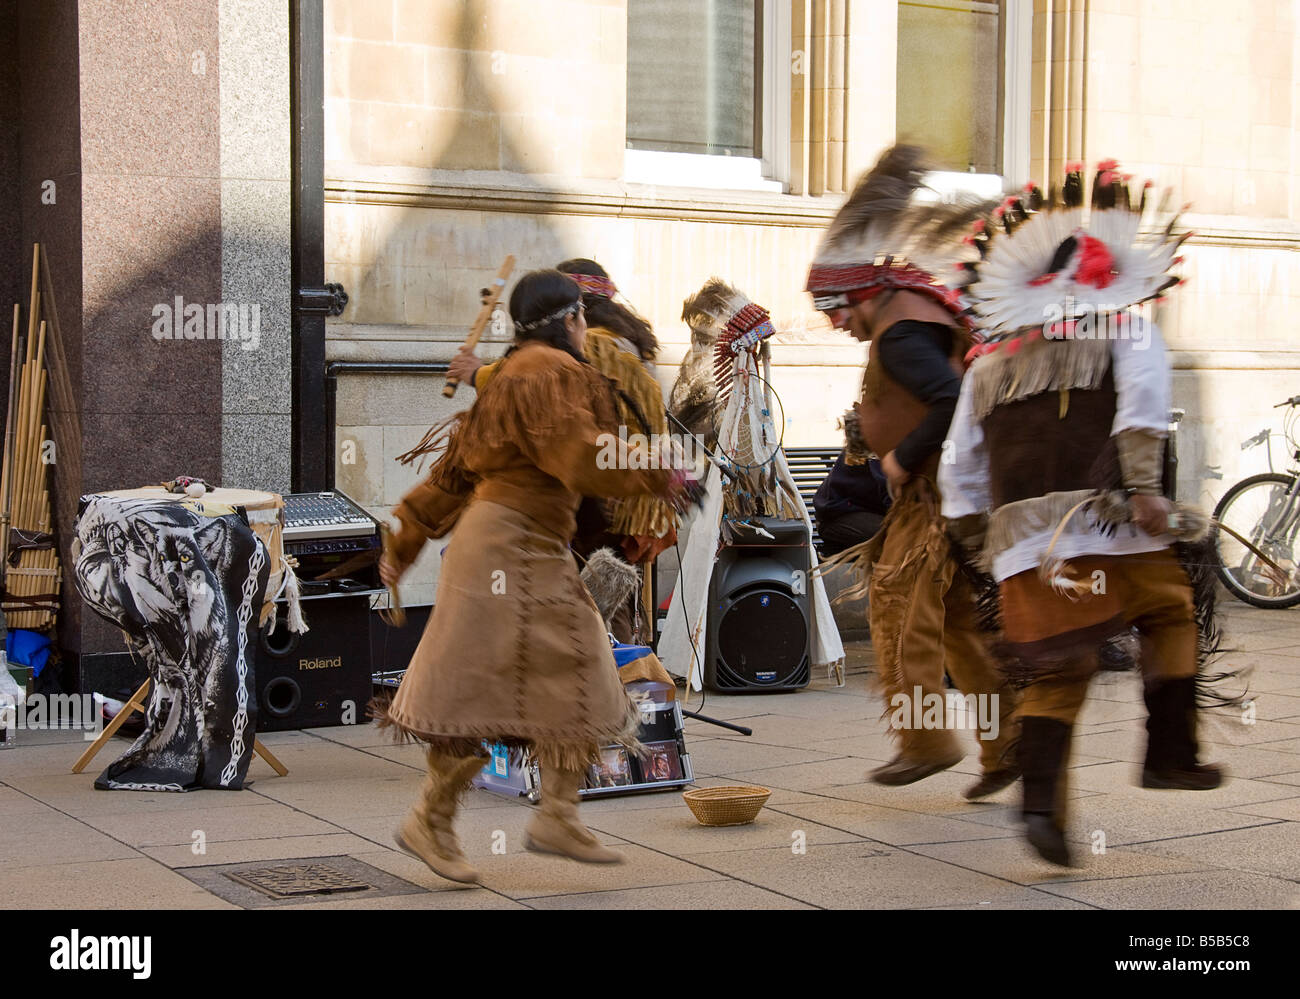 Buskers performing by dancing and singing in the street. - Stock Image